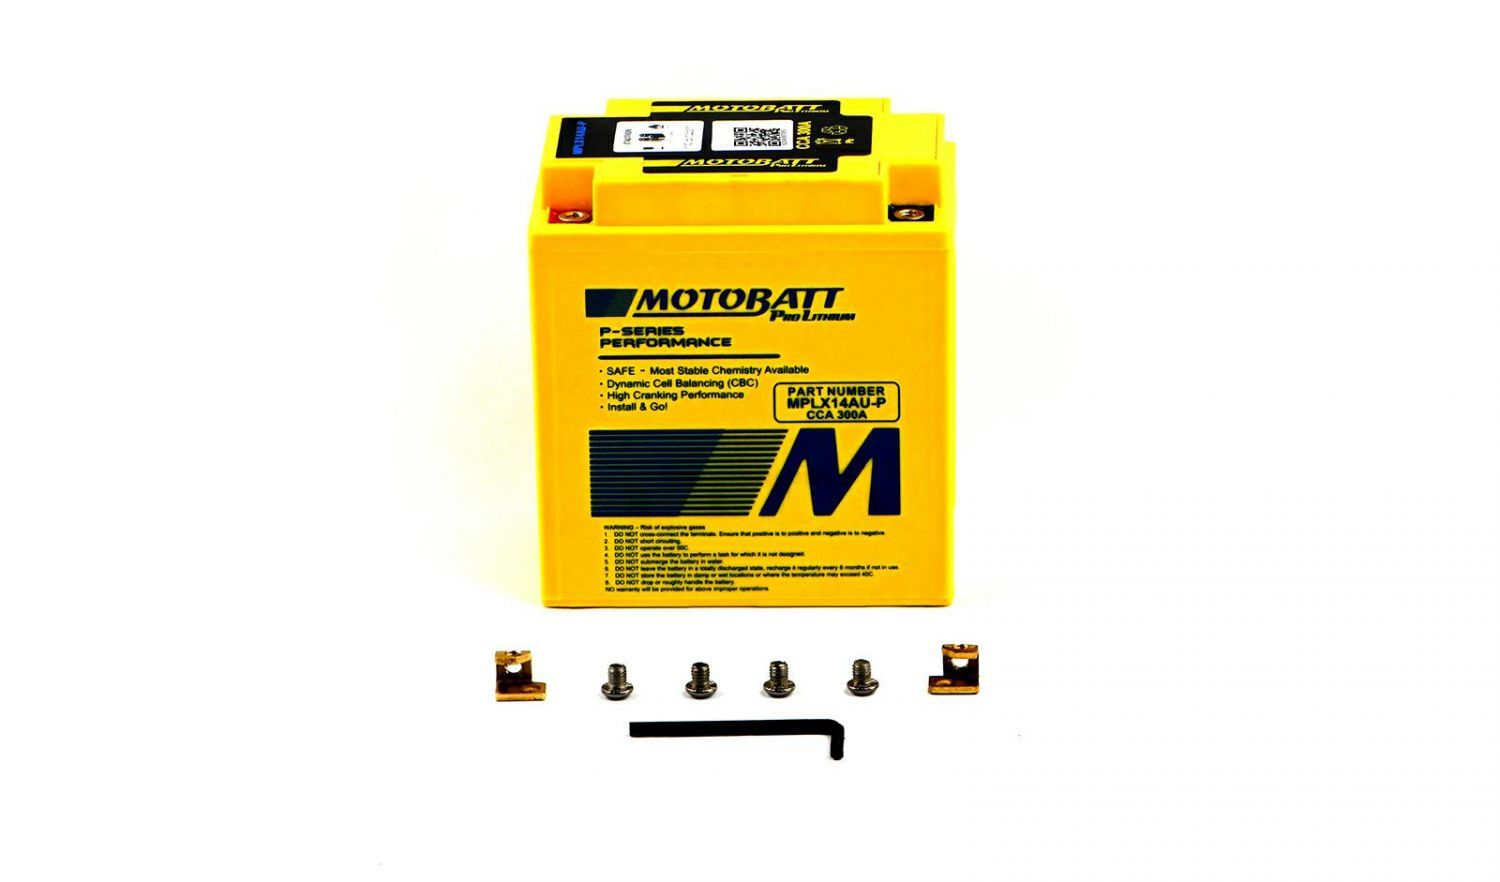 Motobatt Lithium Batteries - 501142ML image